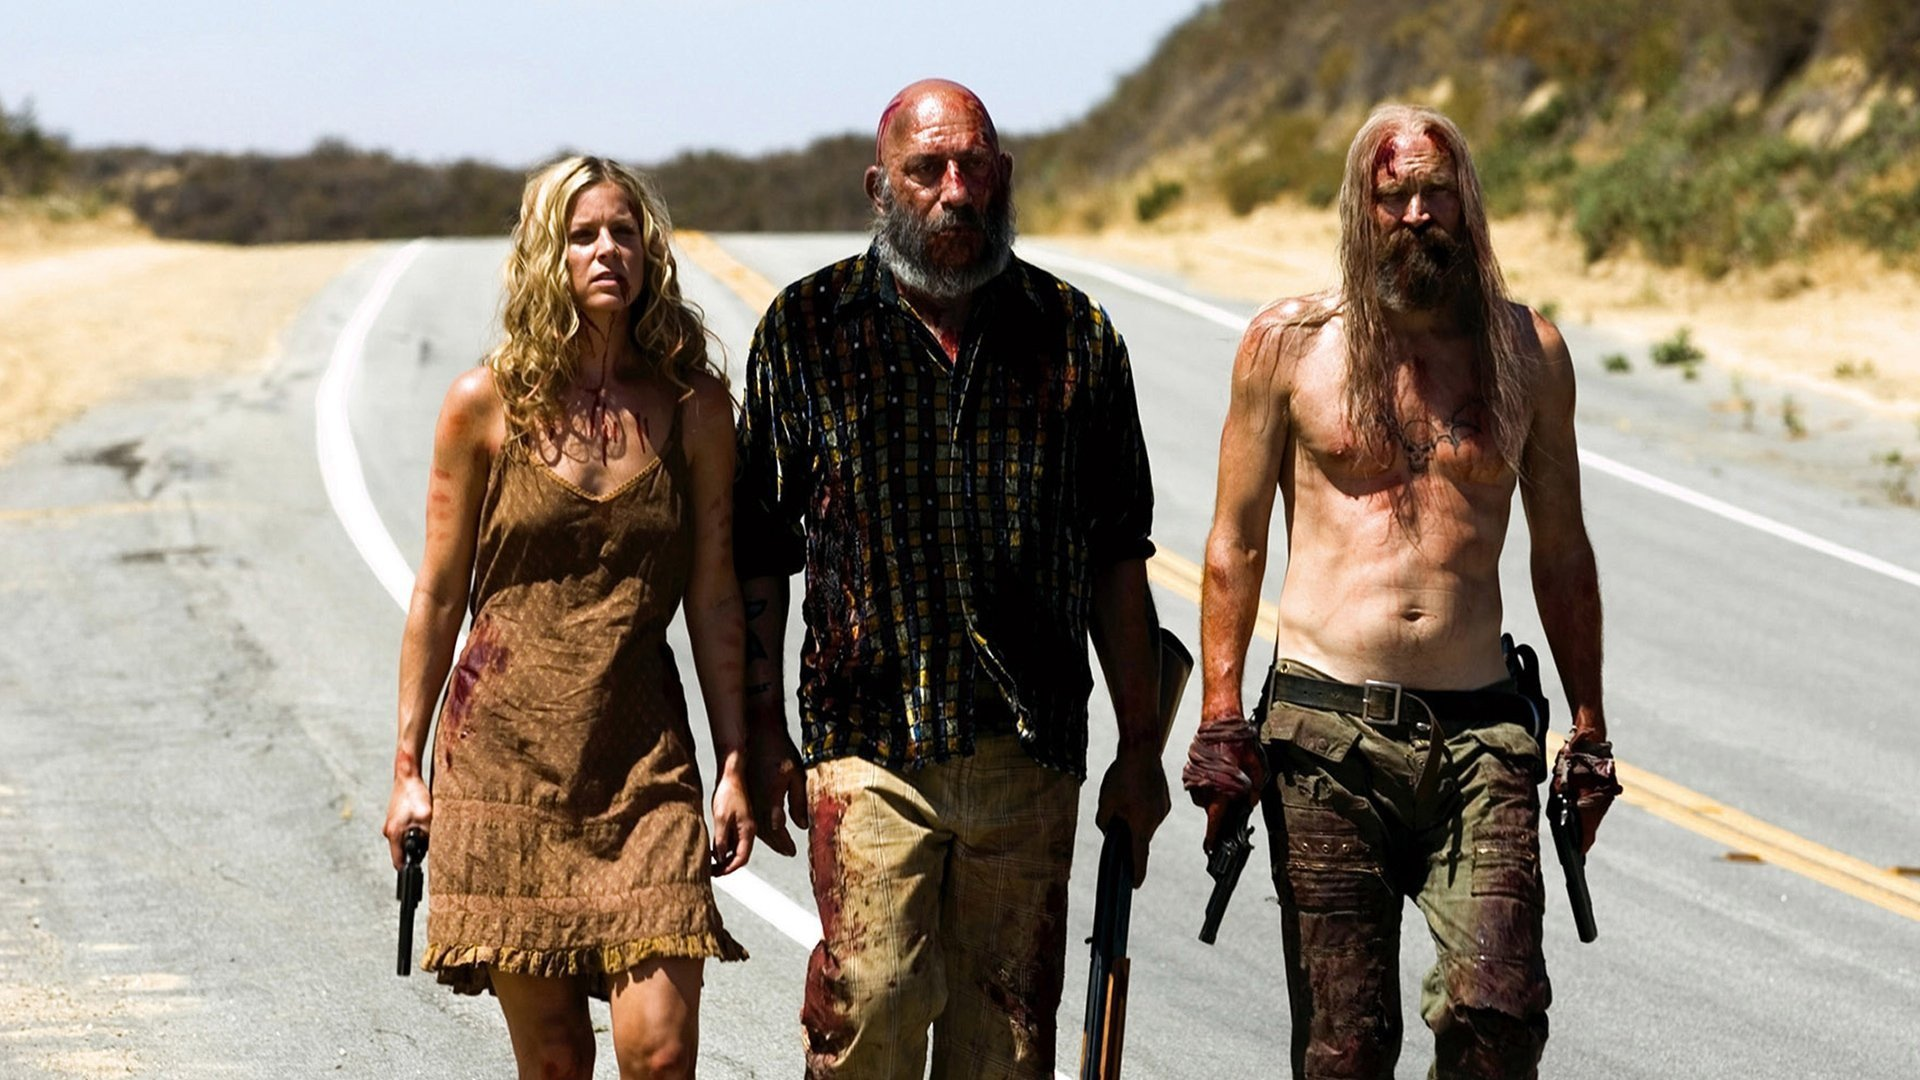 the devil's rejects' sequel in the works from rob zombie | indiewire